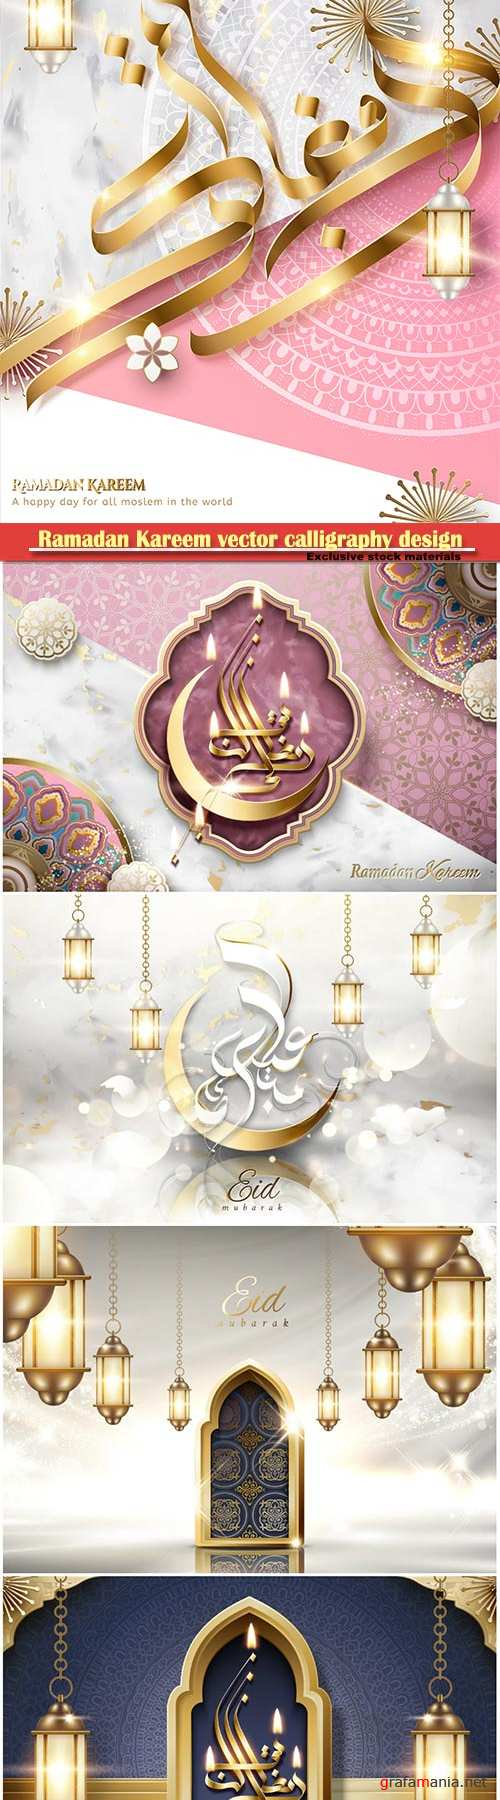 Ramadan Kareem vector calligraphy design with decorative floral pattern, mosque silhouette, crescent and glittering islamic background # 45